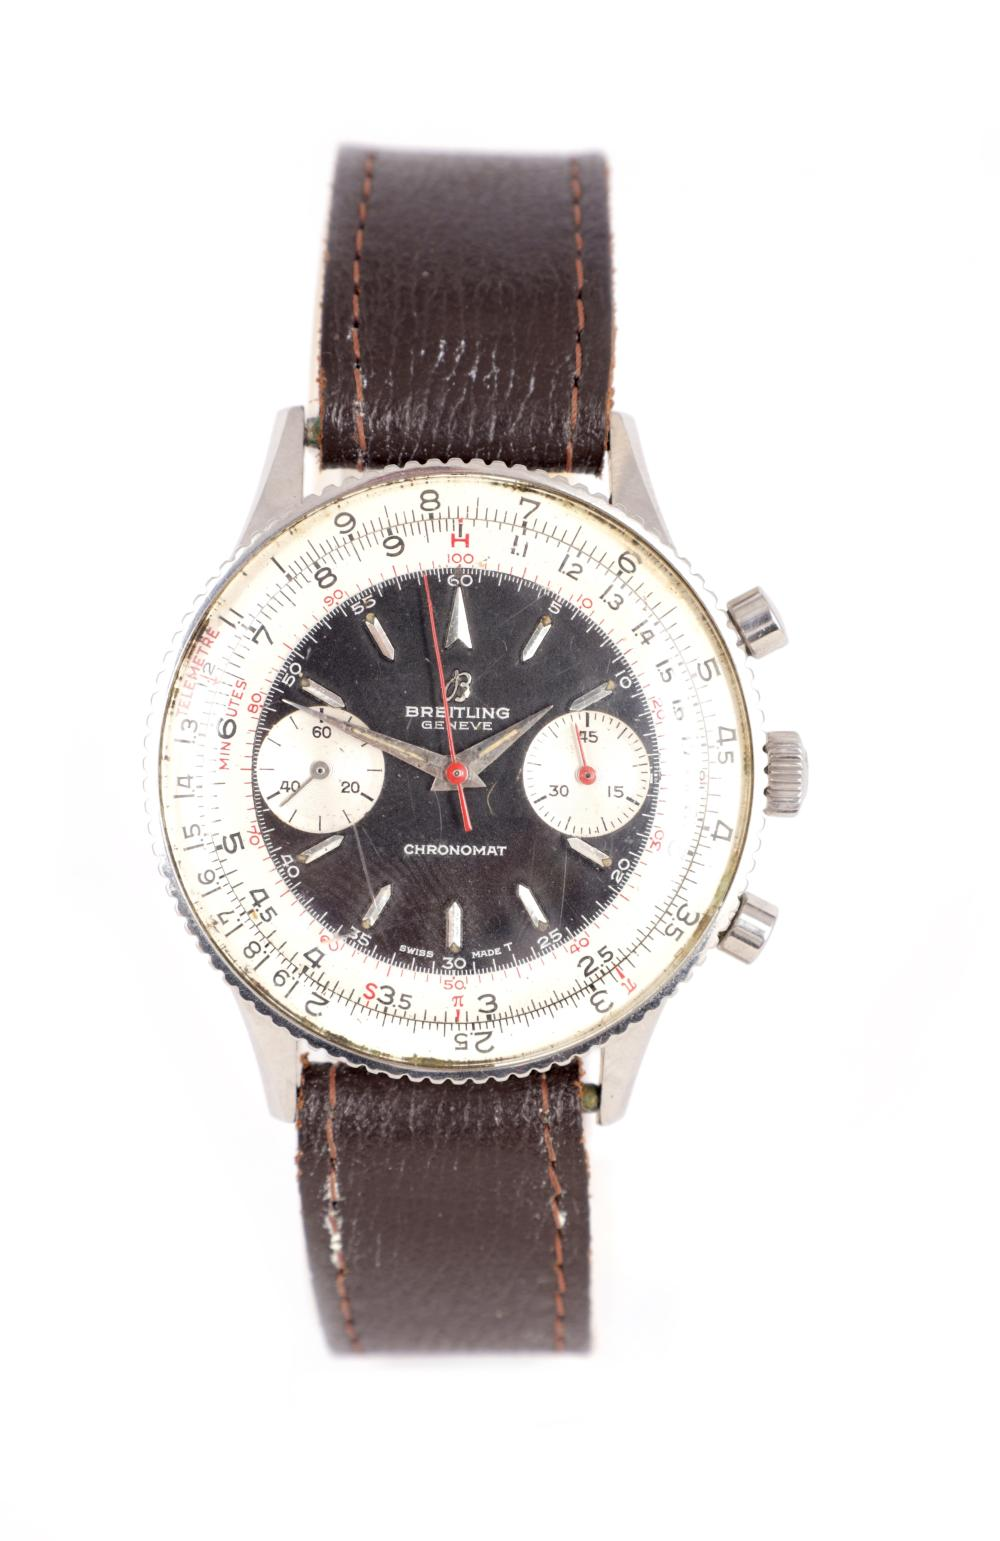 A 1960'S BREITLING GENTLEMAN'S CHRONOMAT STAINLESS STEEL MANUAL WIND CHRONOGRAPH WRISTWATCH